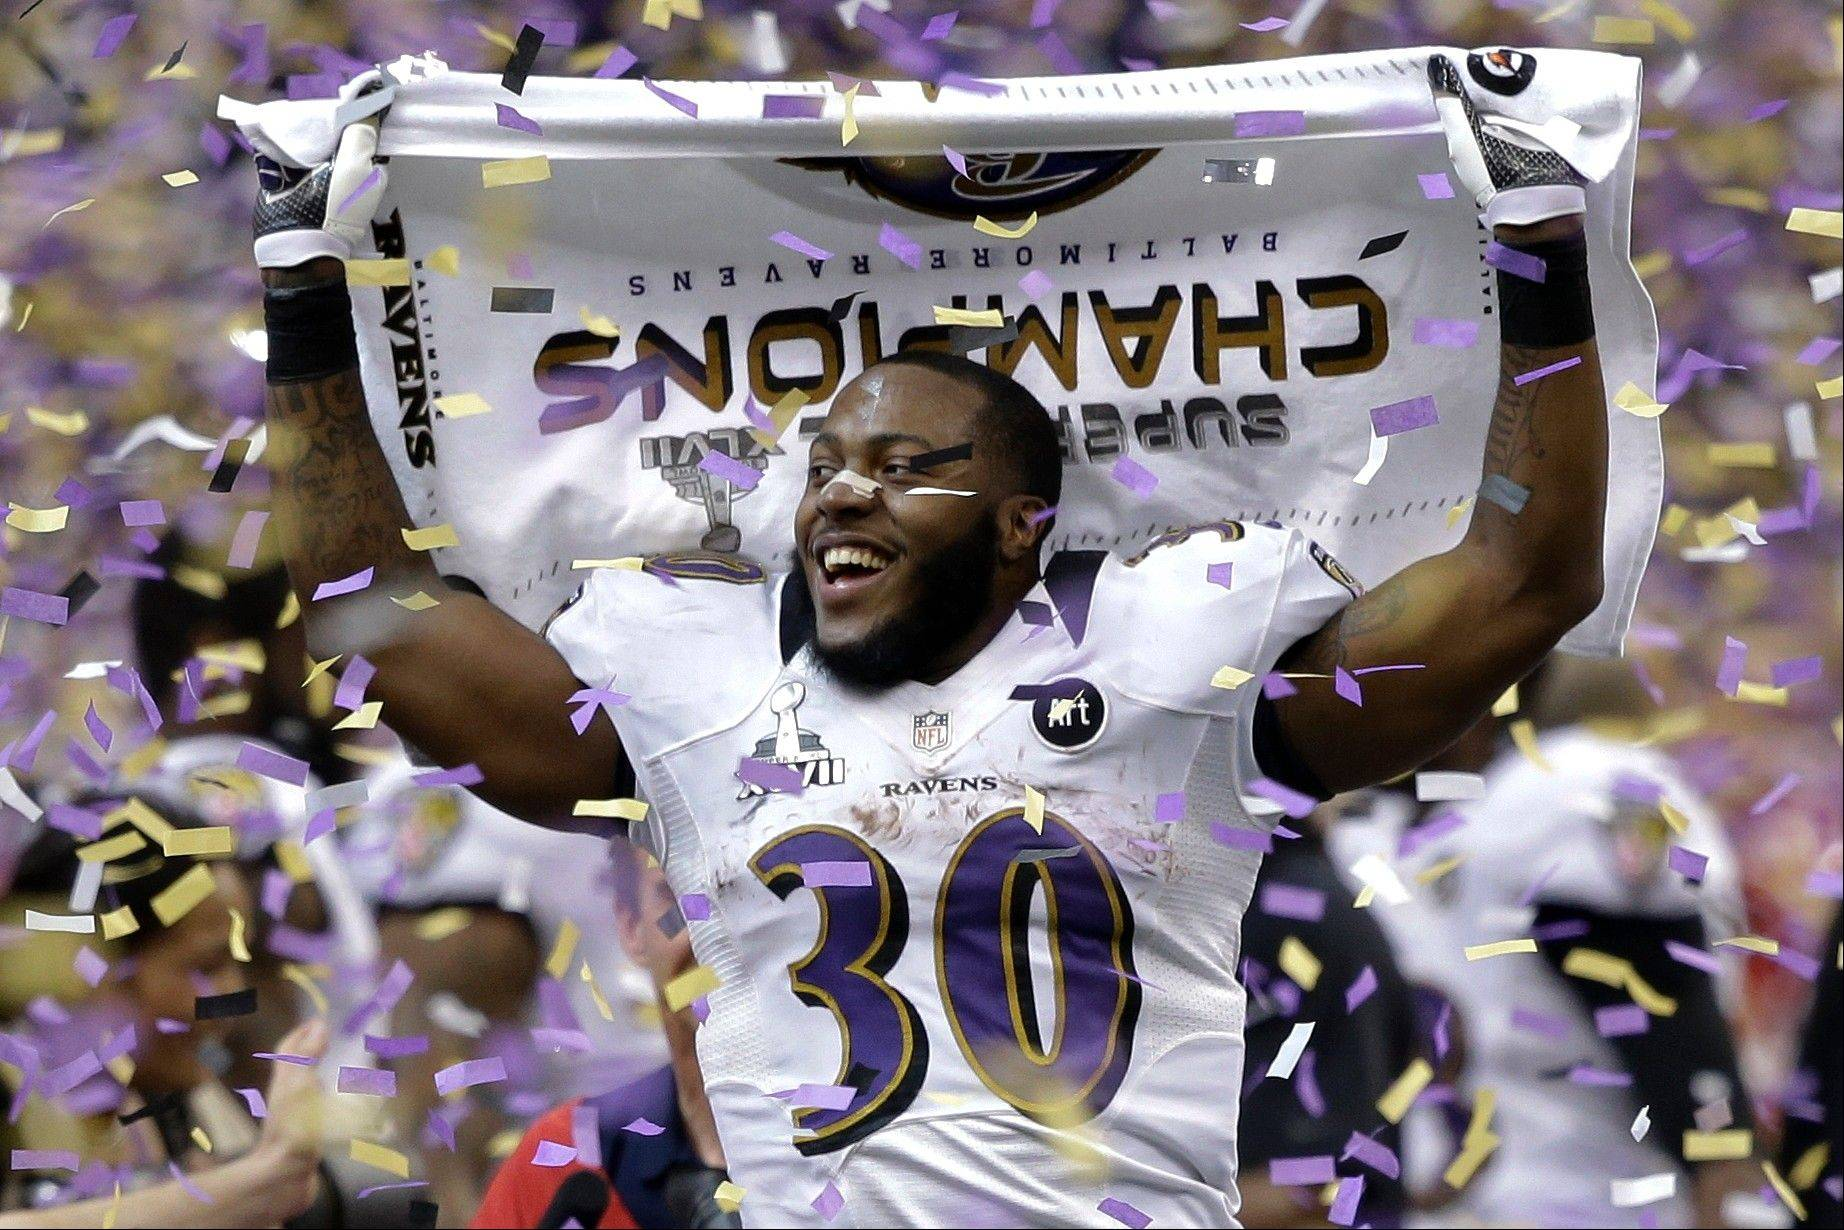 Baltimore Ravens running back Bernard Pierce celebrates after their 34-31 win against the San Francisco 49ers in the NFL Super Bowl XLVII Sunday in New Orleans.